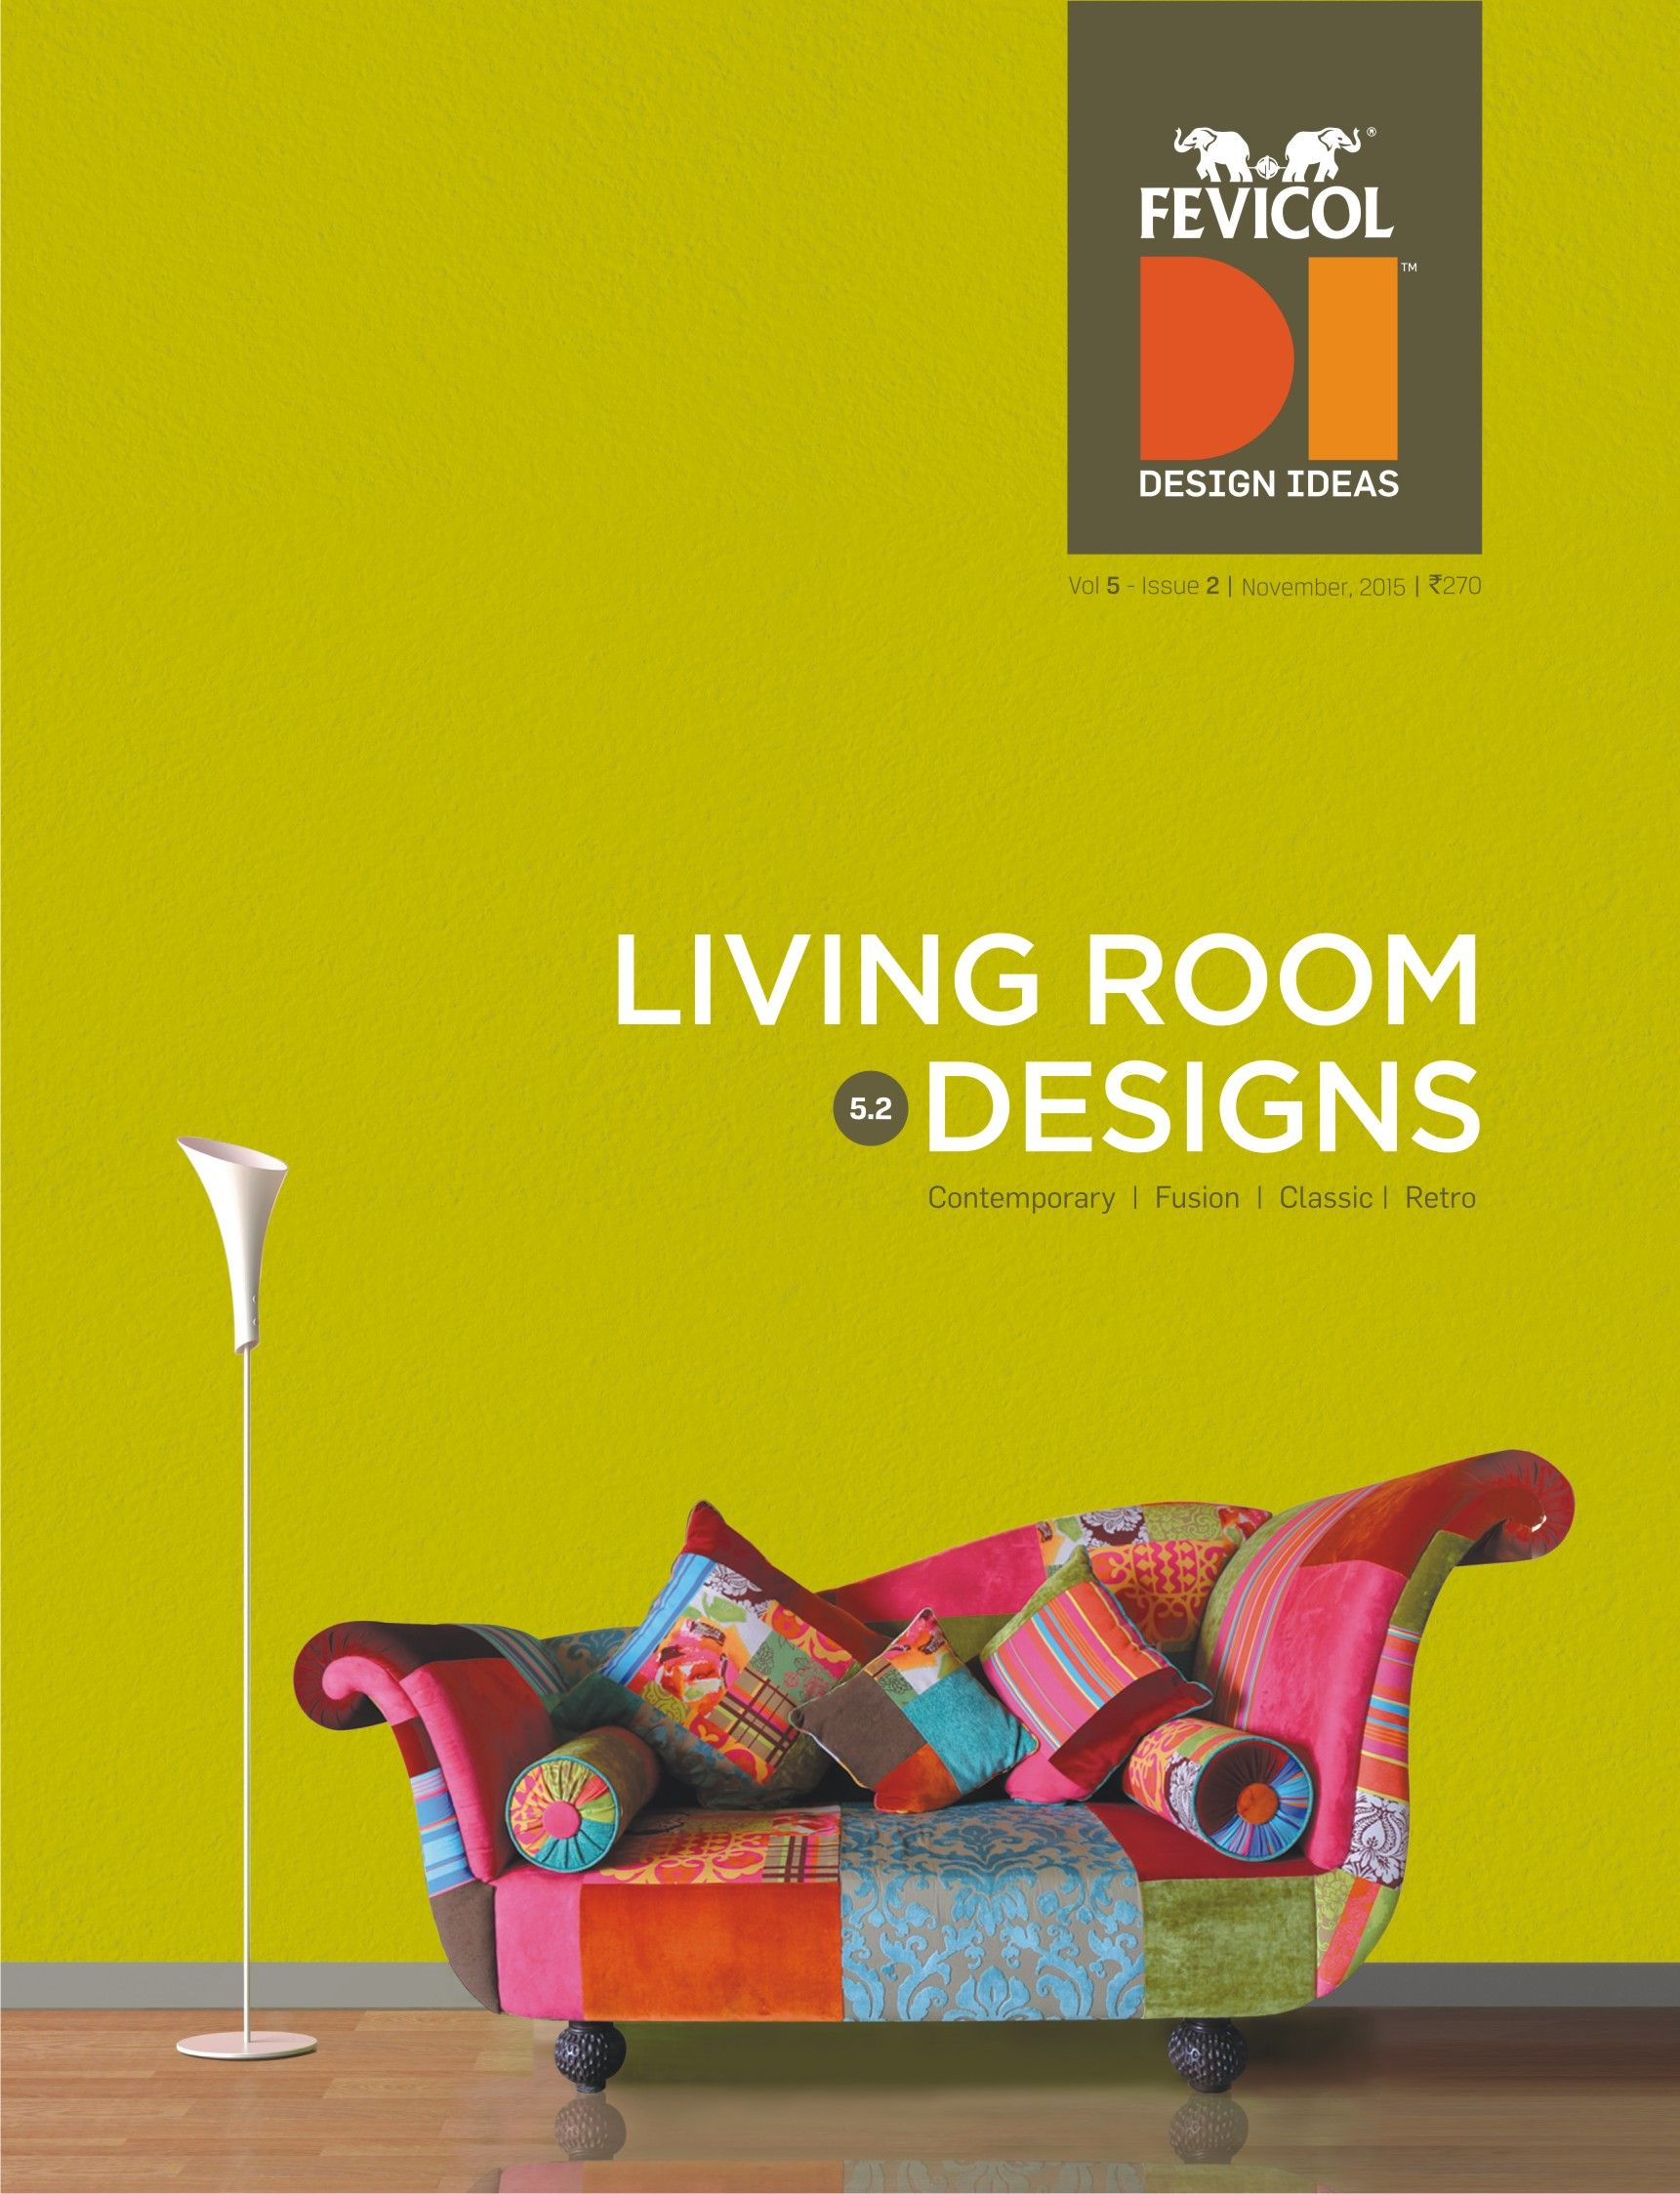 Fevicol Design Ideas 5 2 Fevicol Furniture Book Buy line